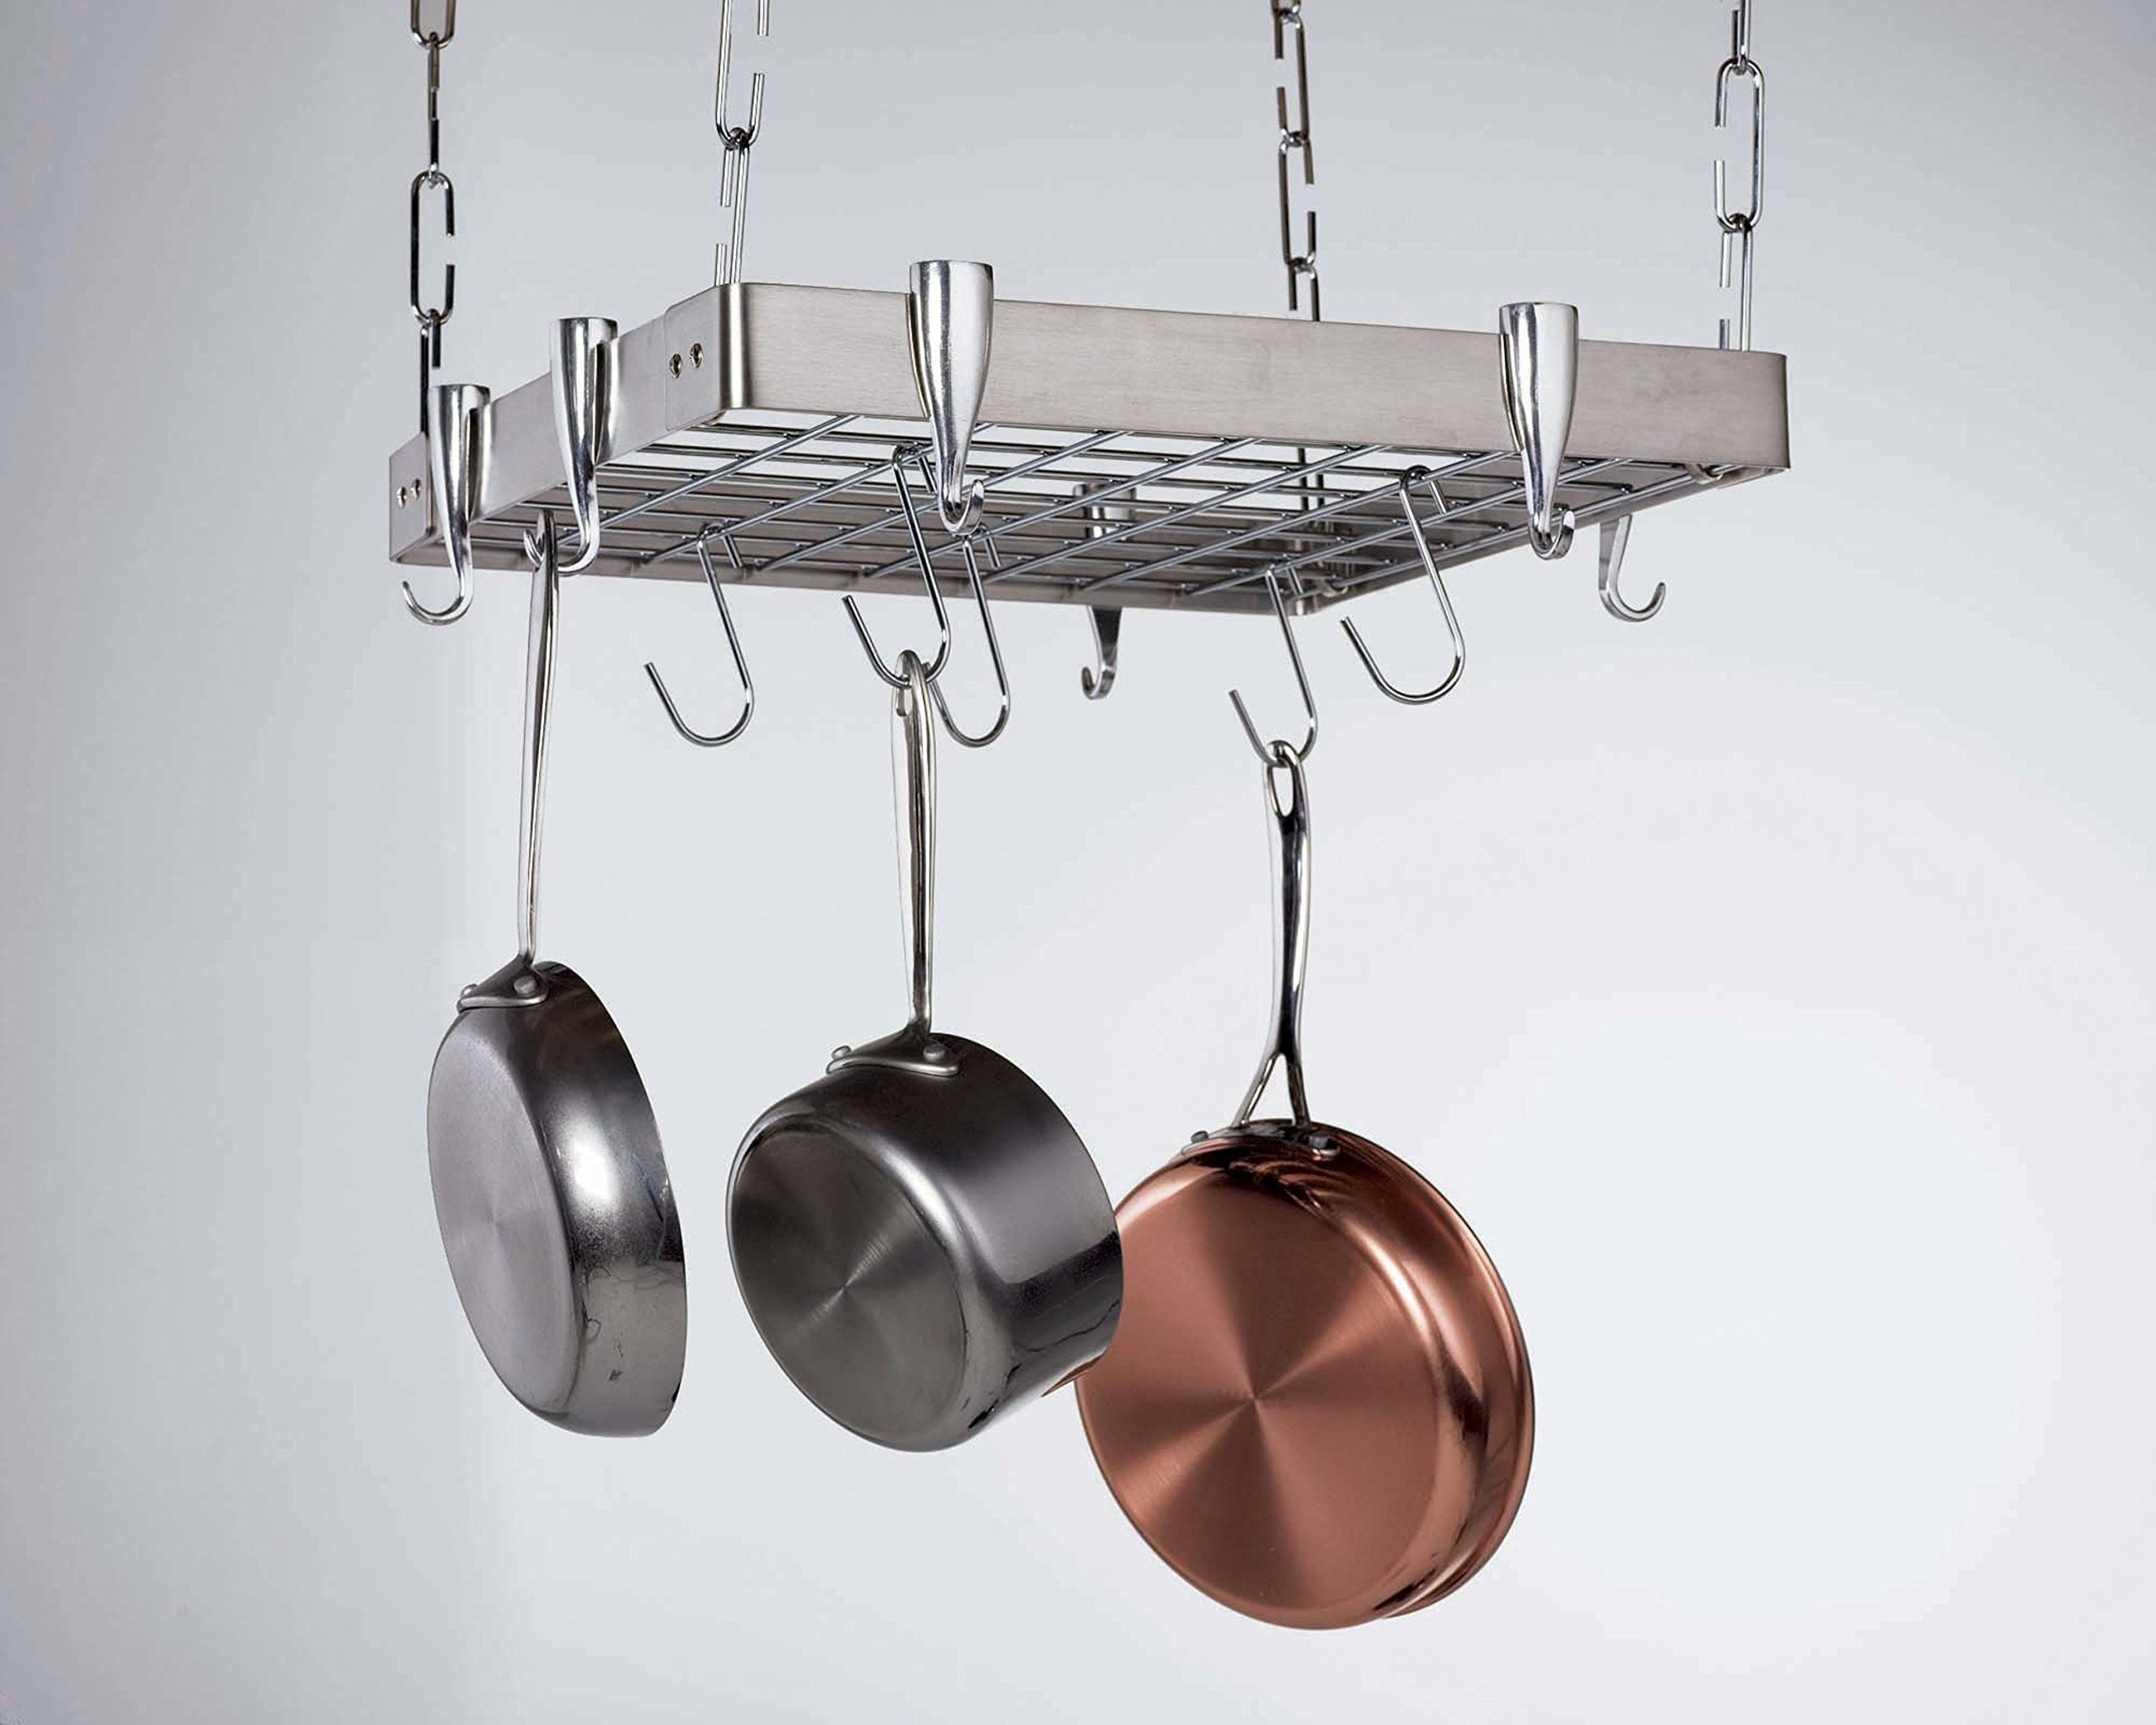 Stainless Steel Hanging Square Shelves Kitchen Ceiling Pot Rack